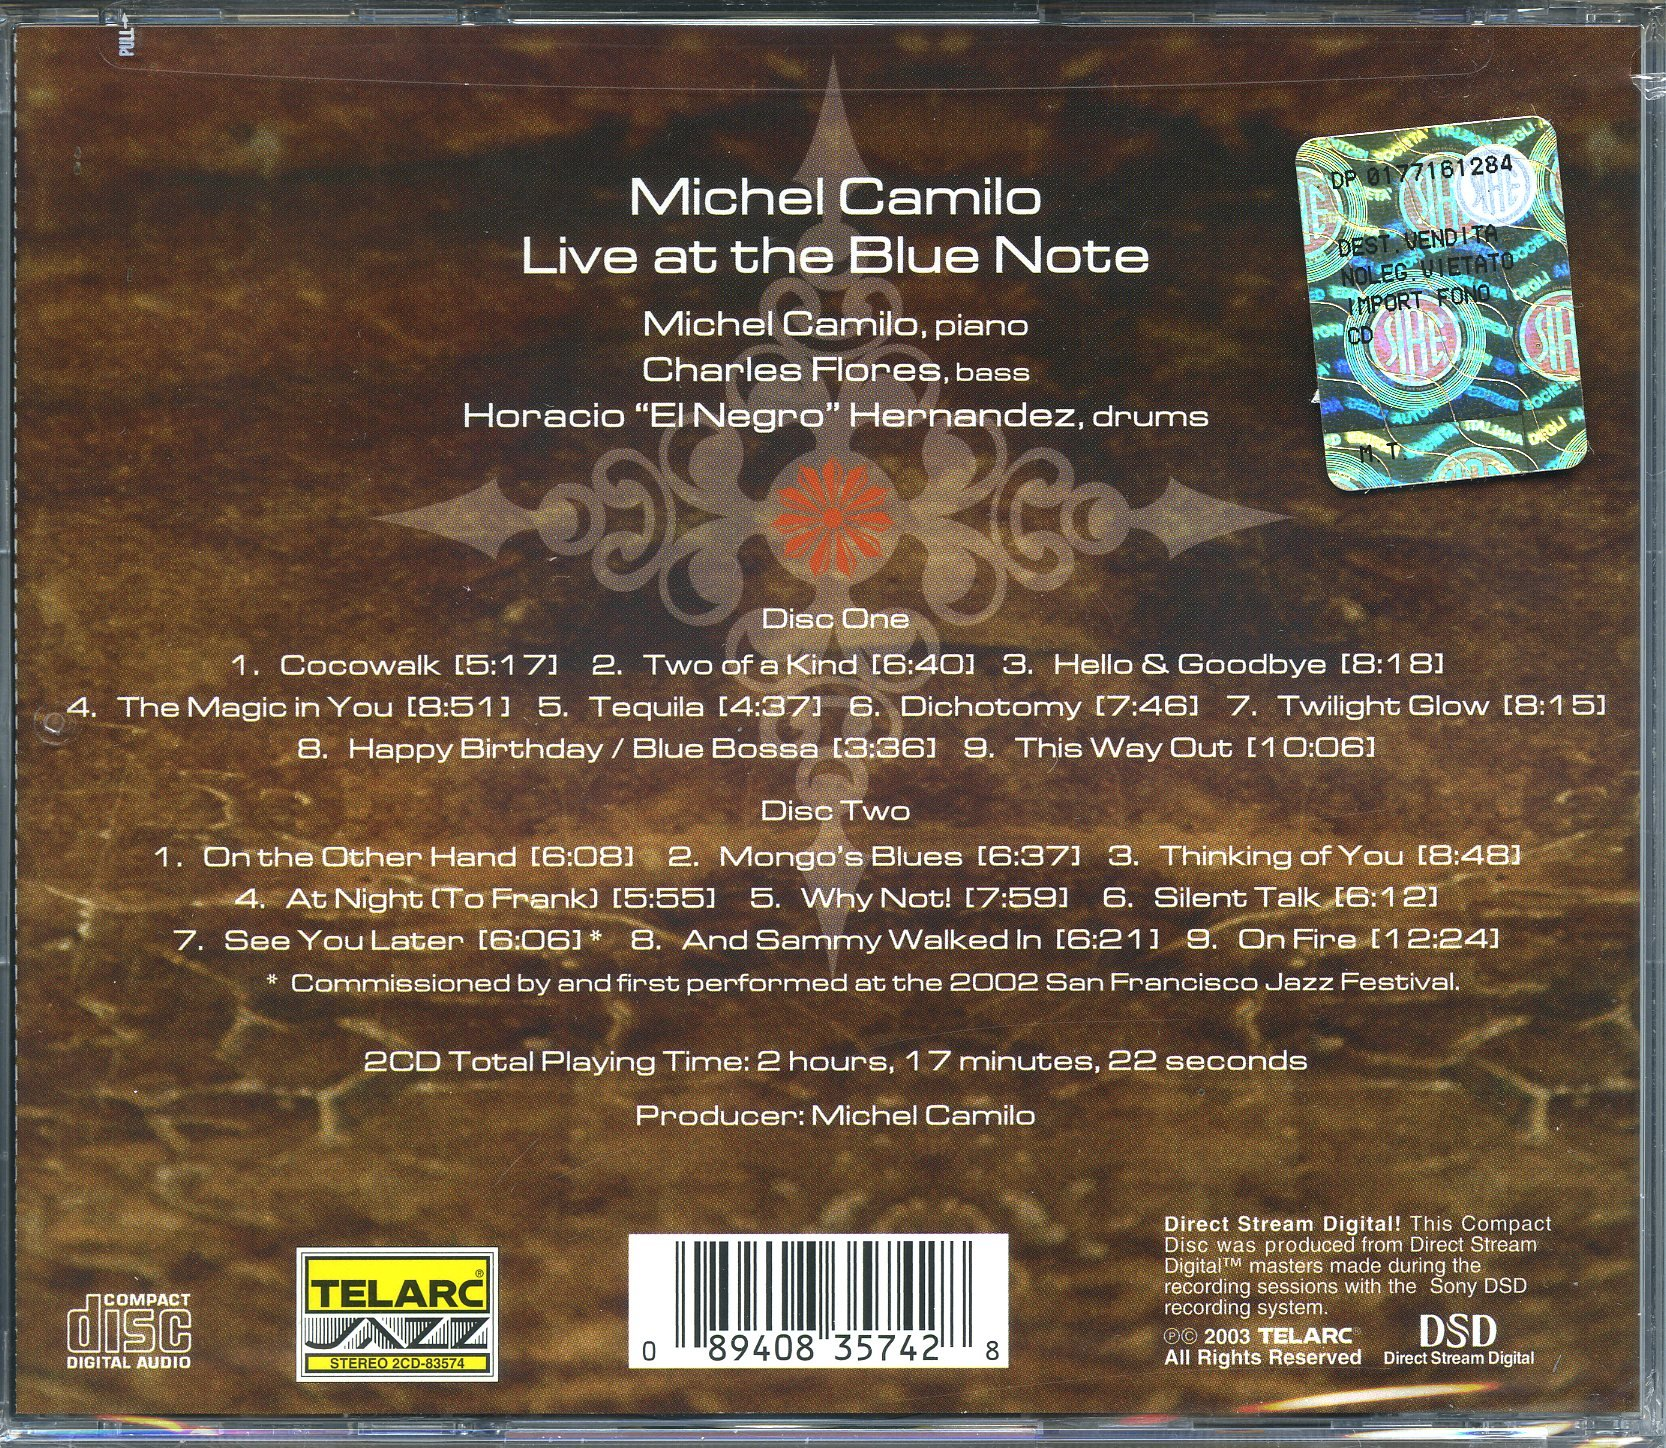 Live At The Blue Note [2 CD] by CAMILIO,MICHEL